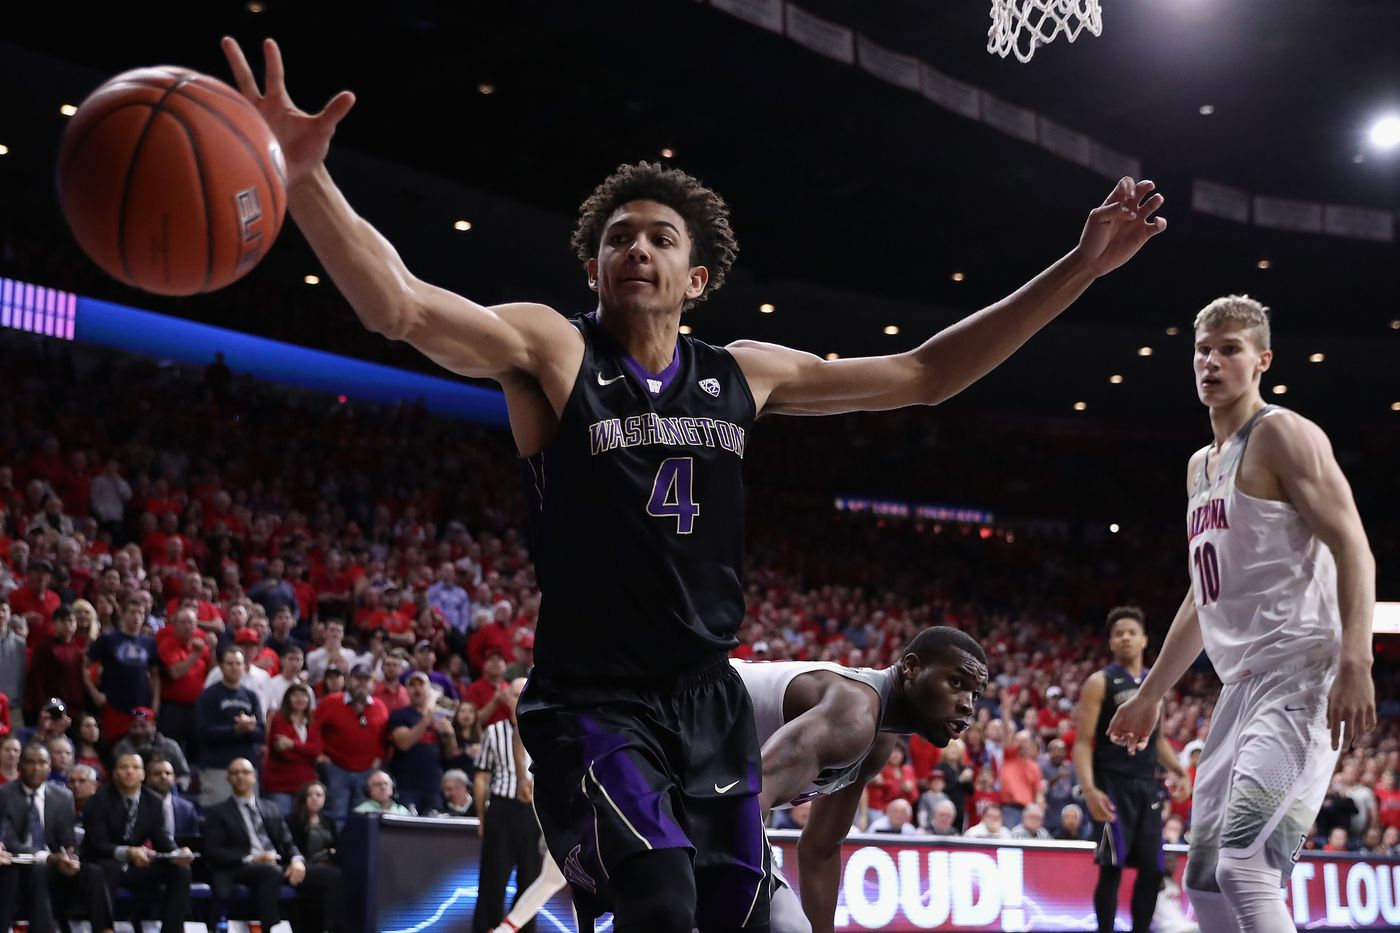 ac1e8f8f0c1 2019 NBA Draft: 5 defenders the Cavs should consider with the No. 26  overall pick - Fear The Sword